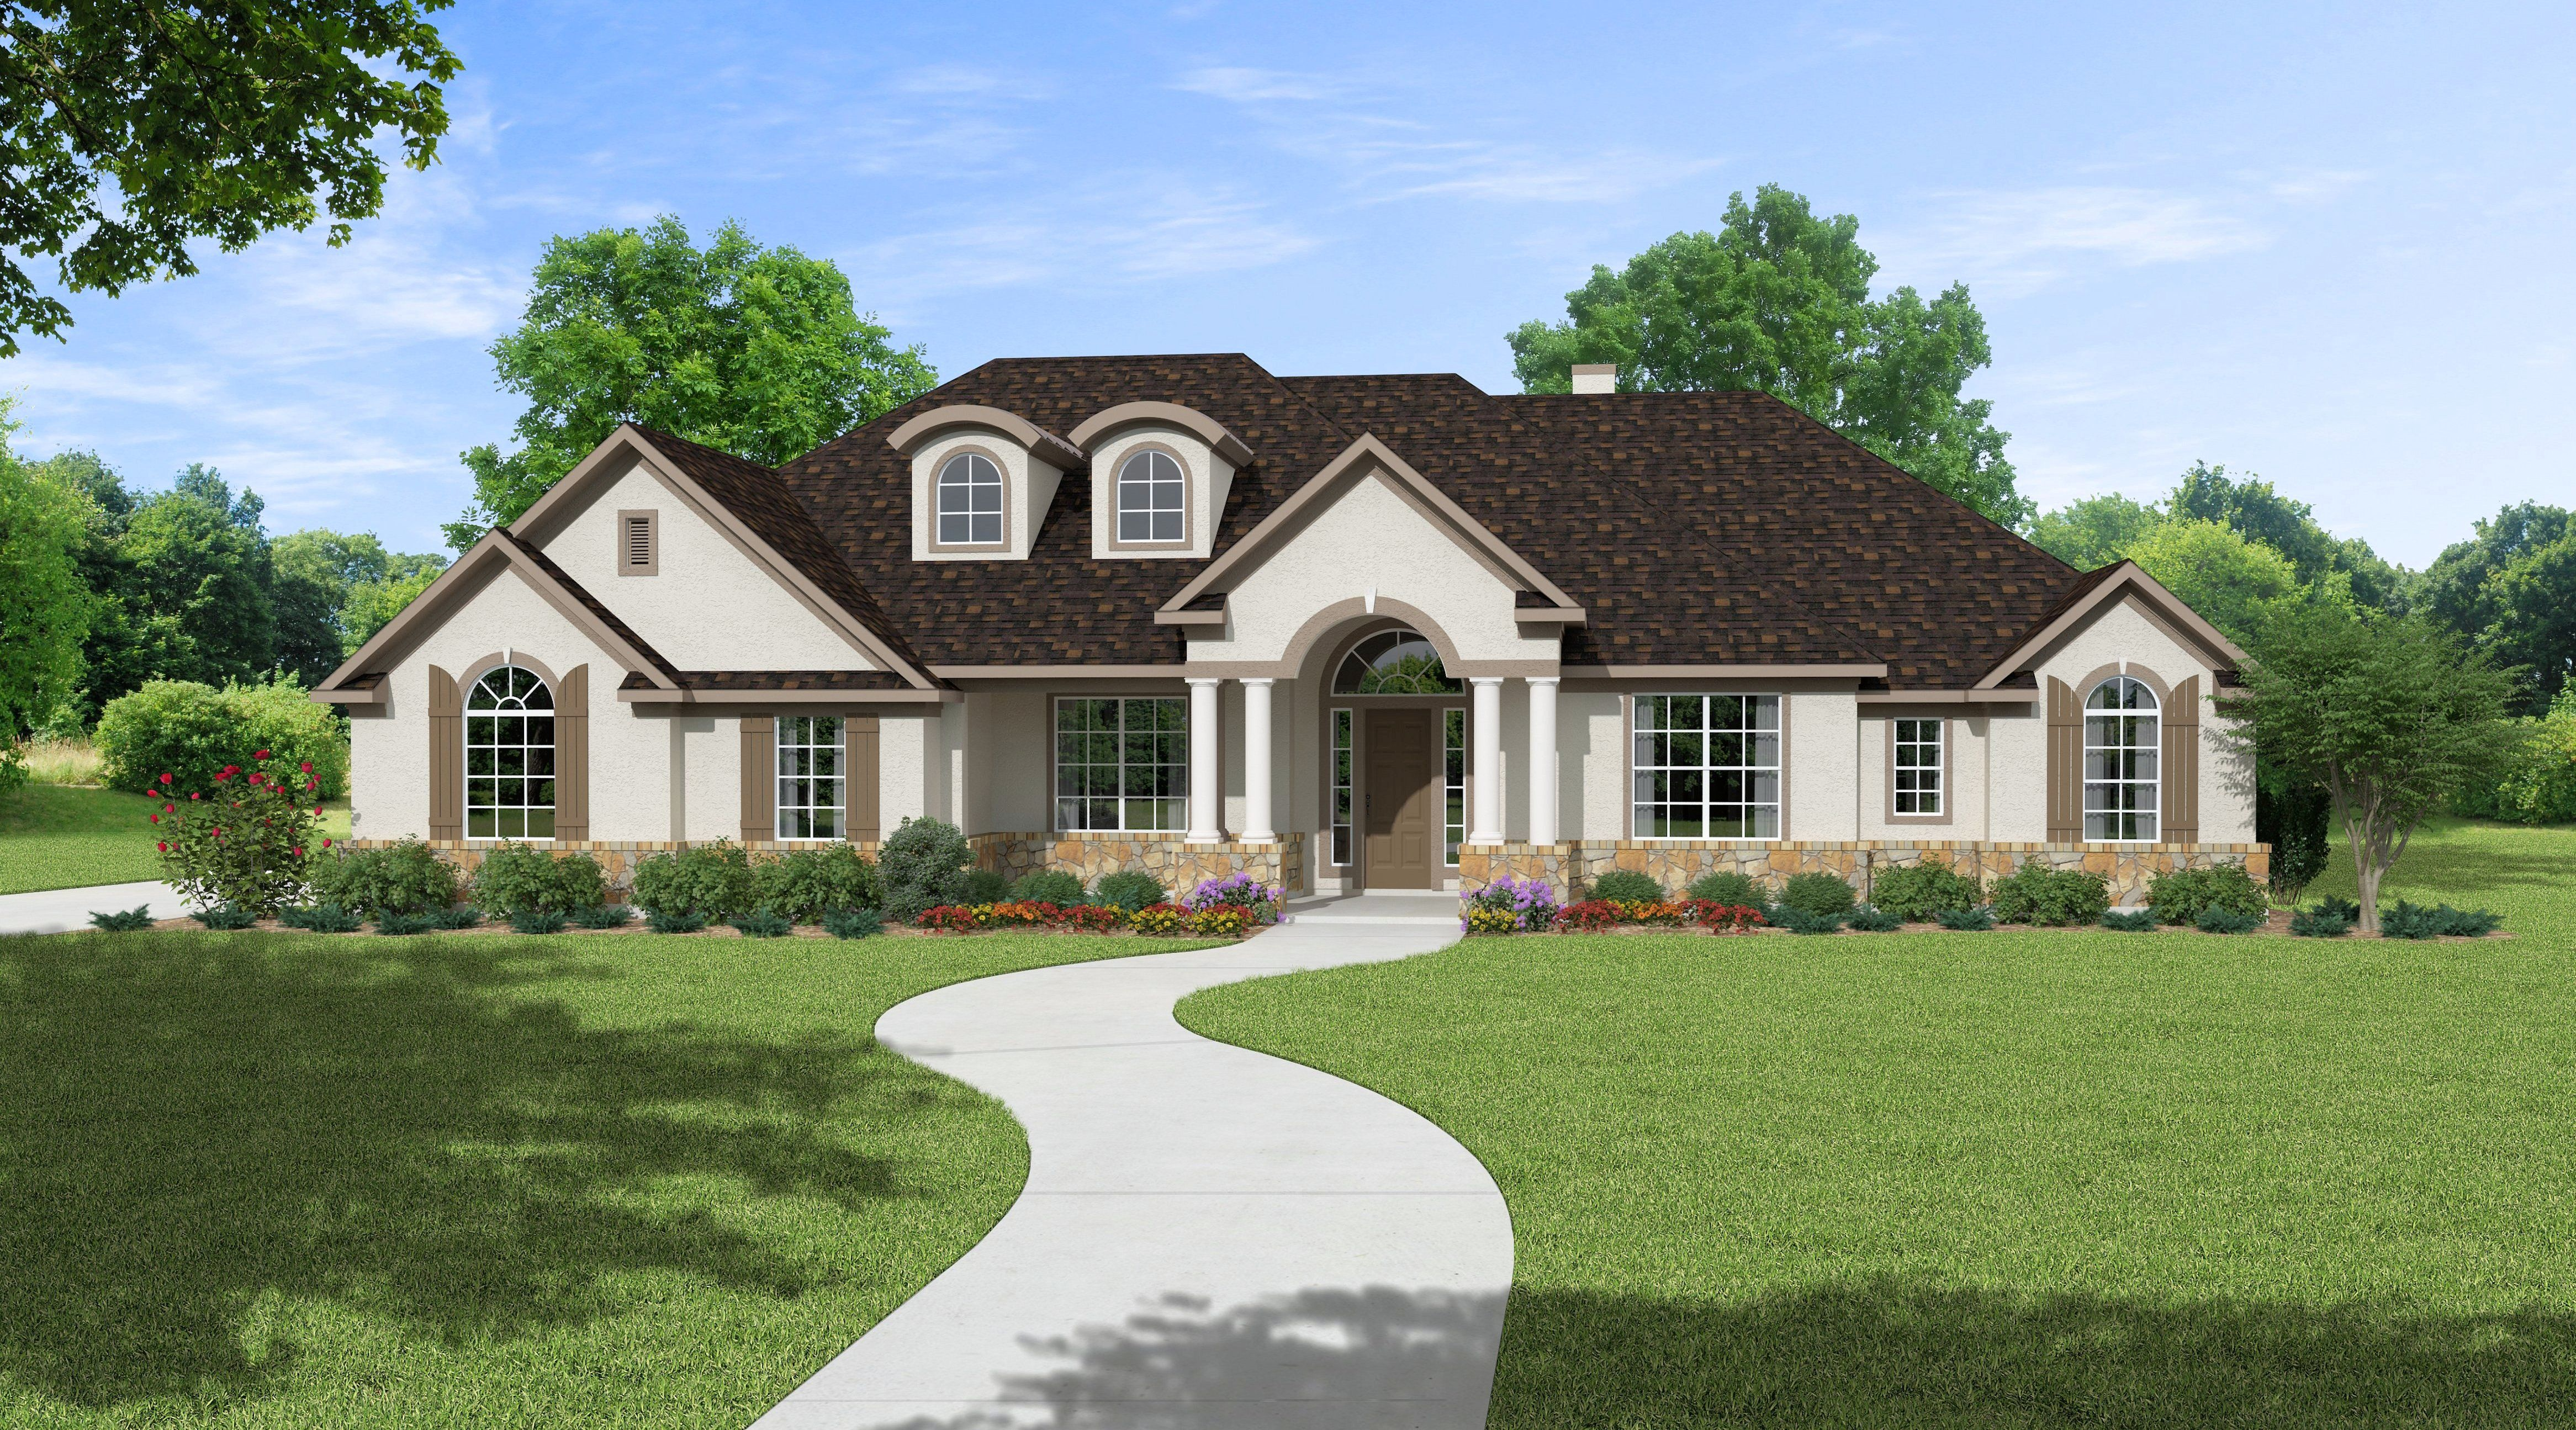 2 984 sq ft house plan 4 bed 3 bath 1 story the